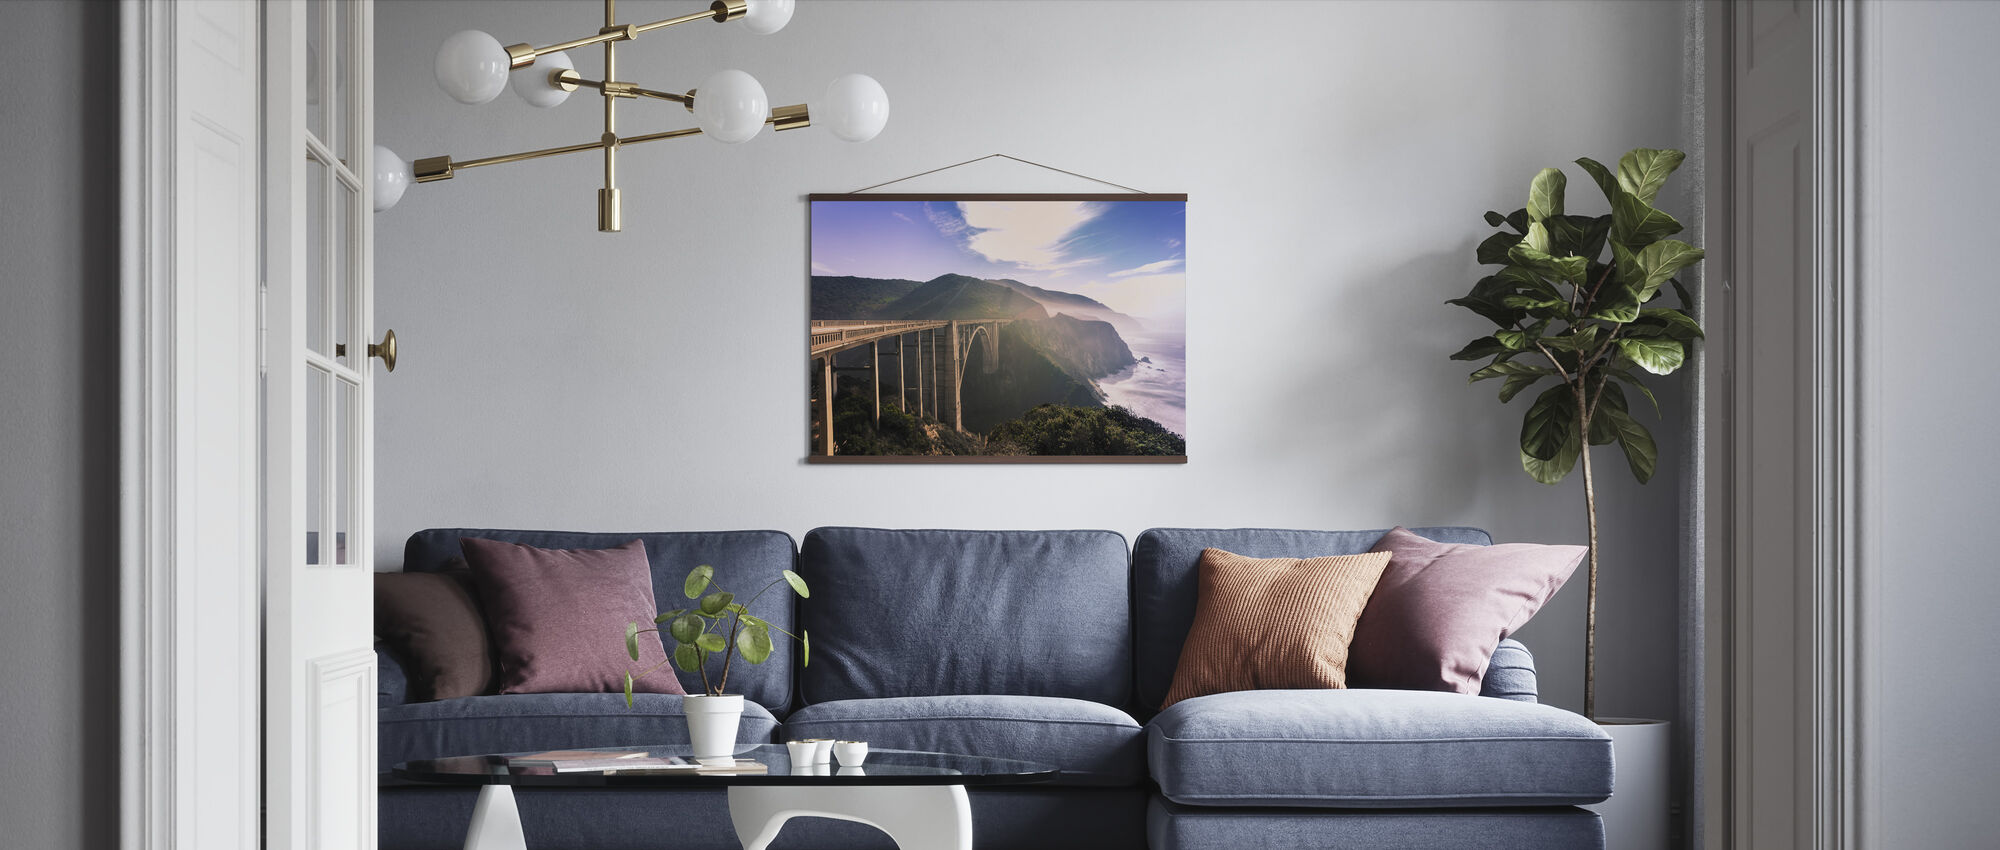 Monterey Dreams - Poster - Living Room